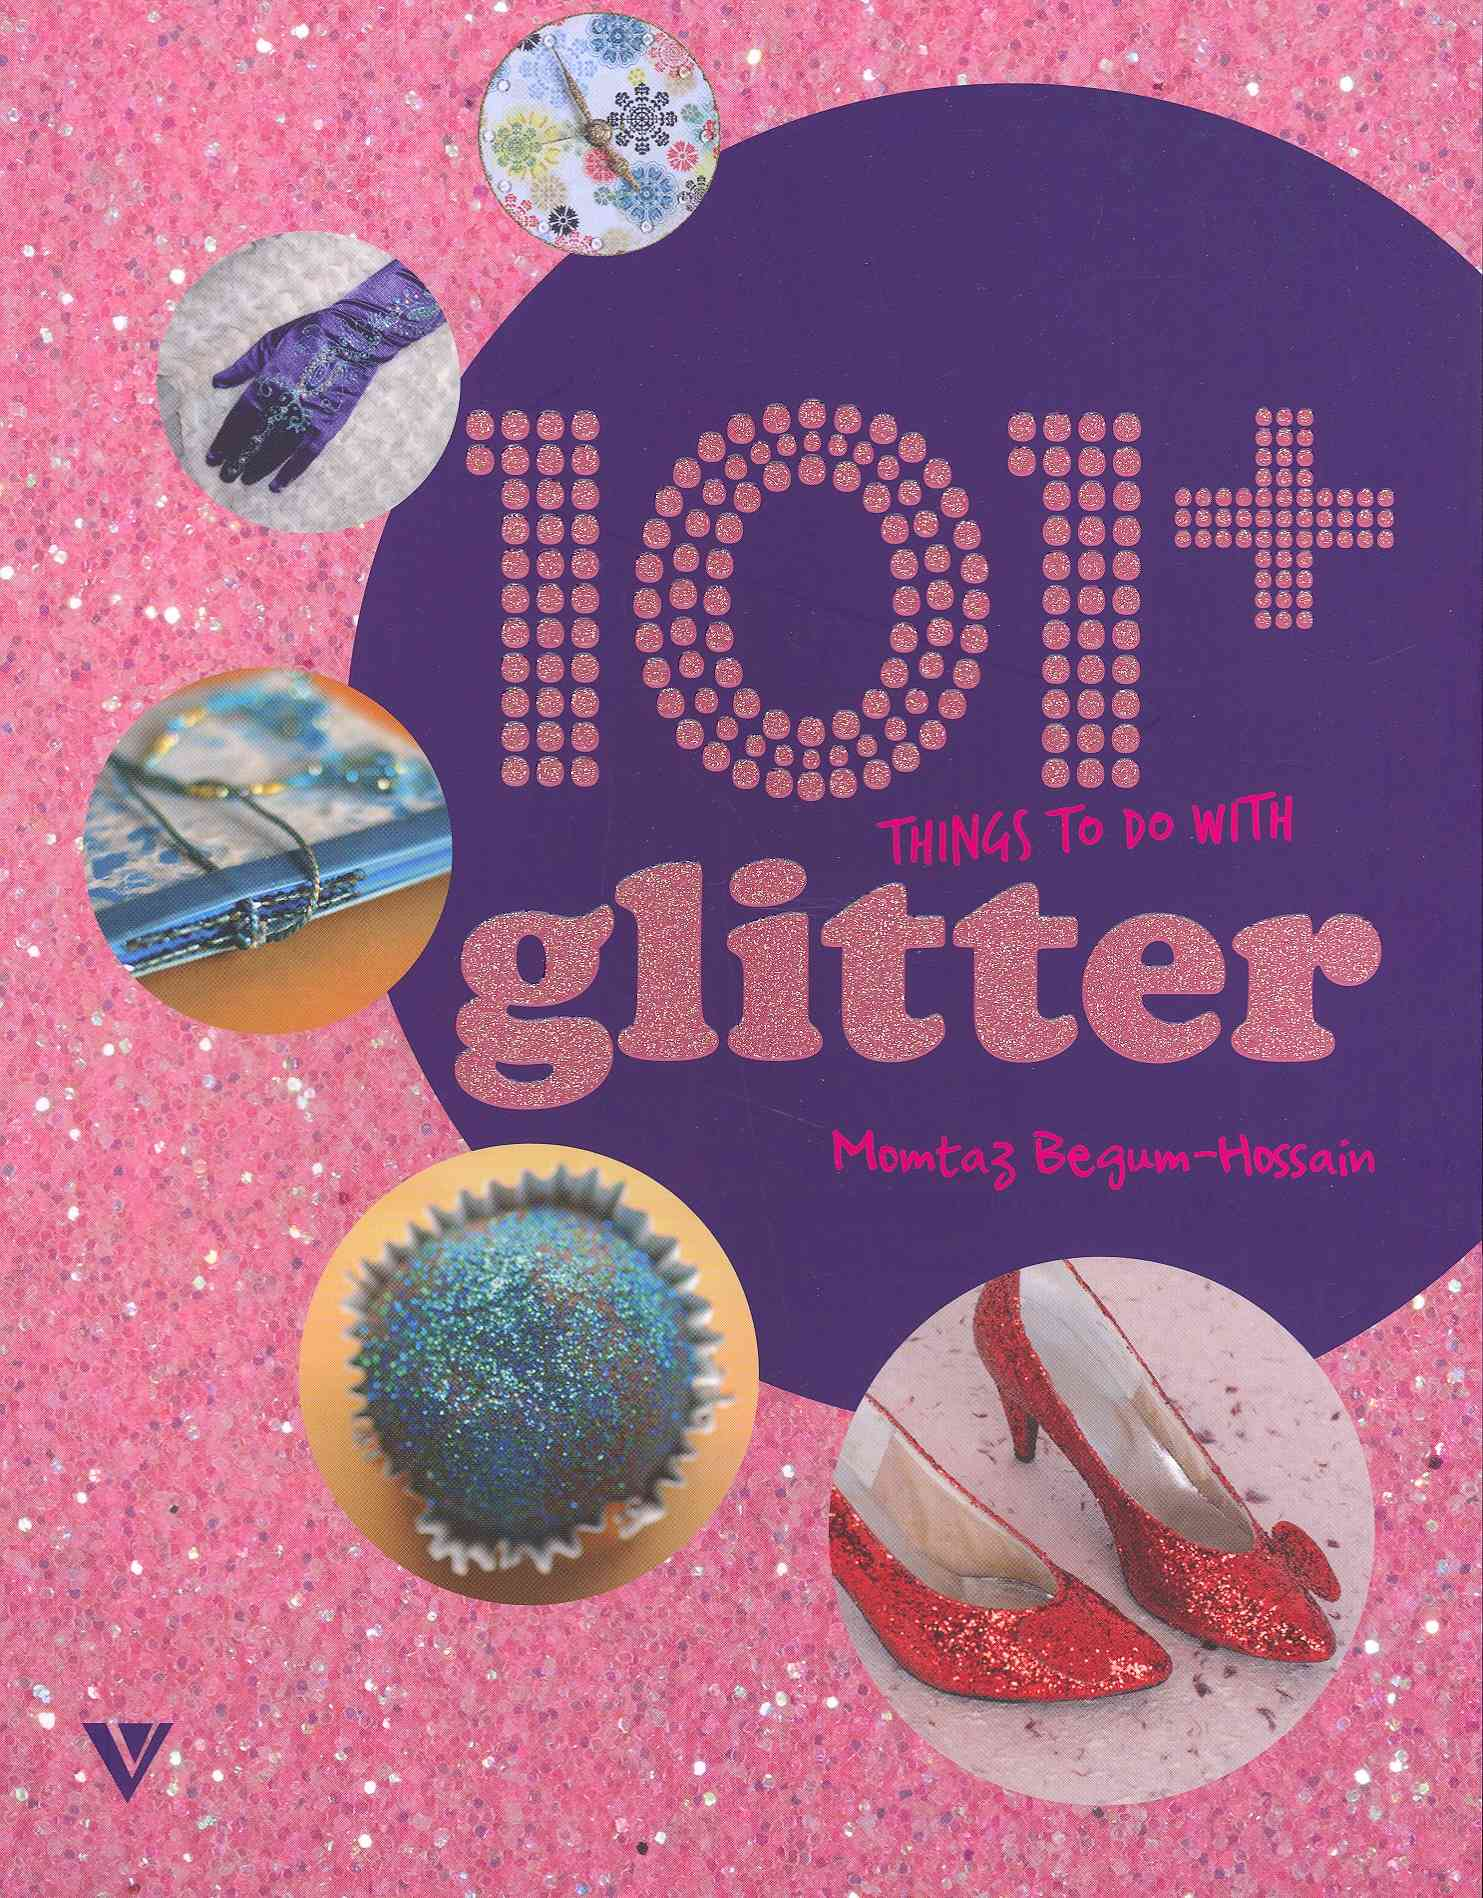 101+ Things to Do With Glitter (Paperback)